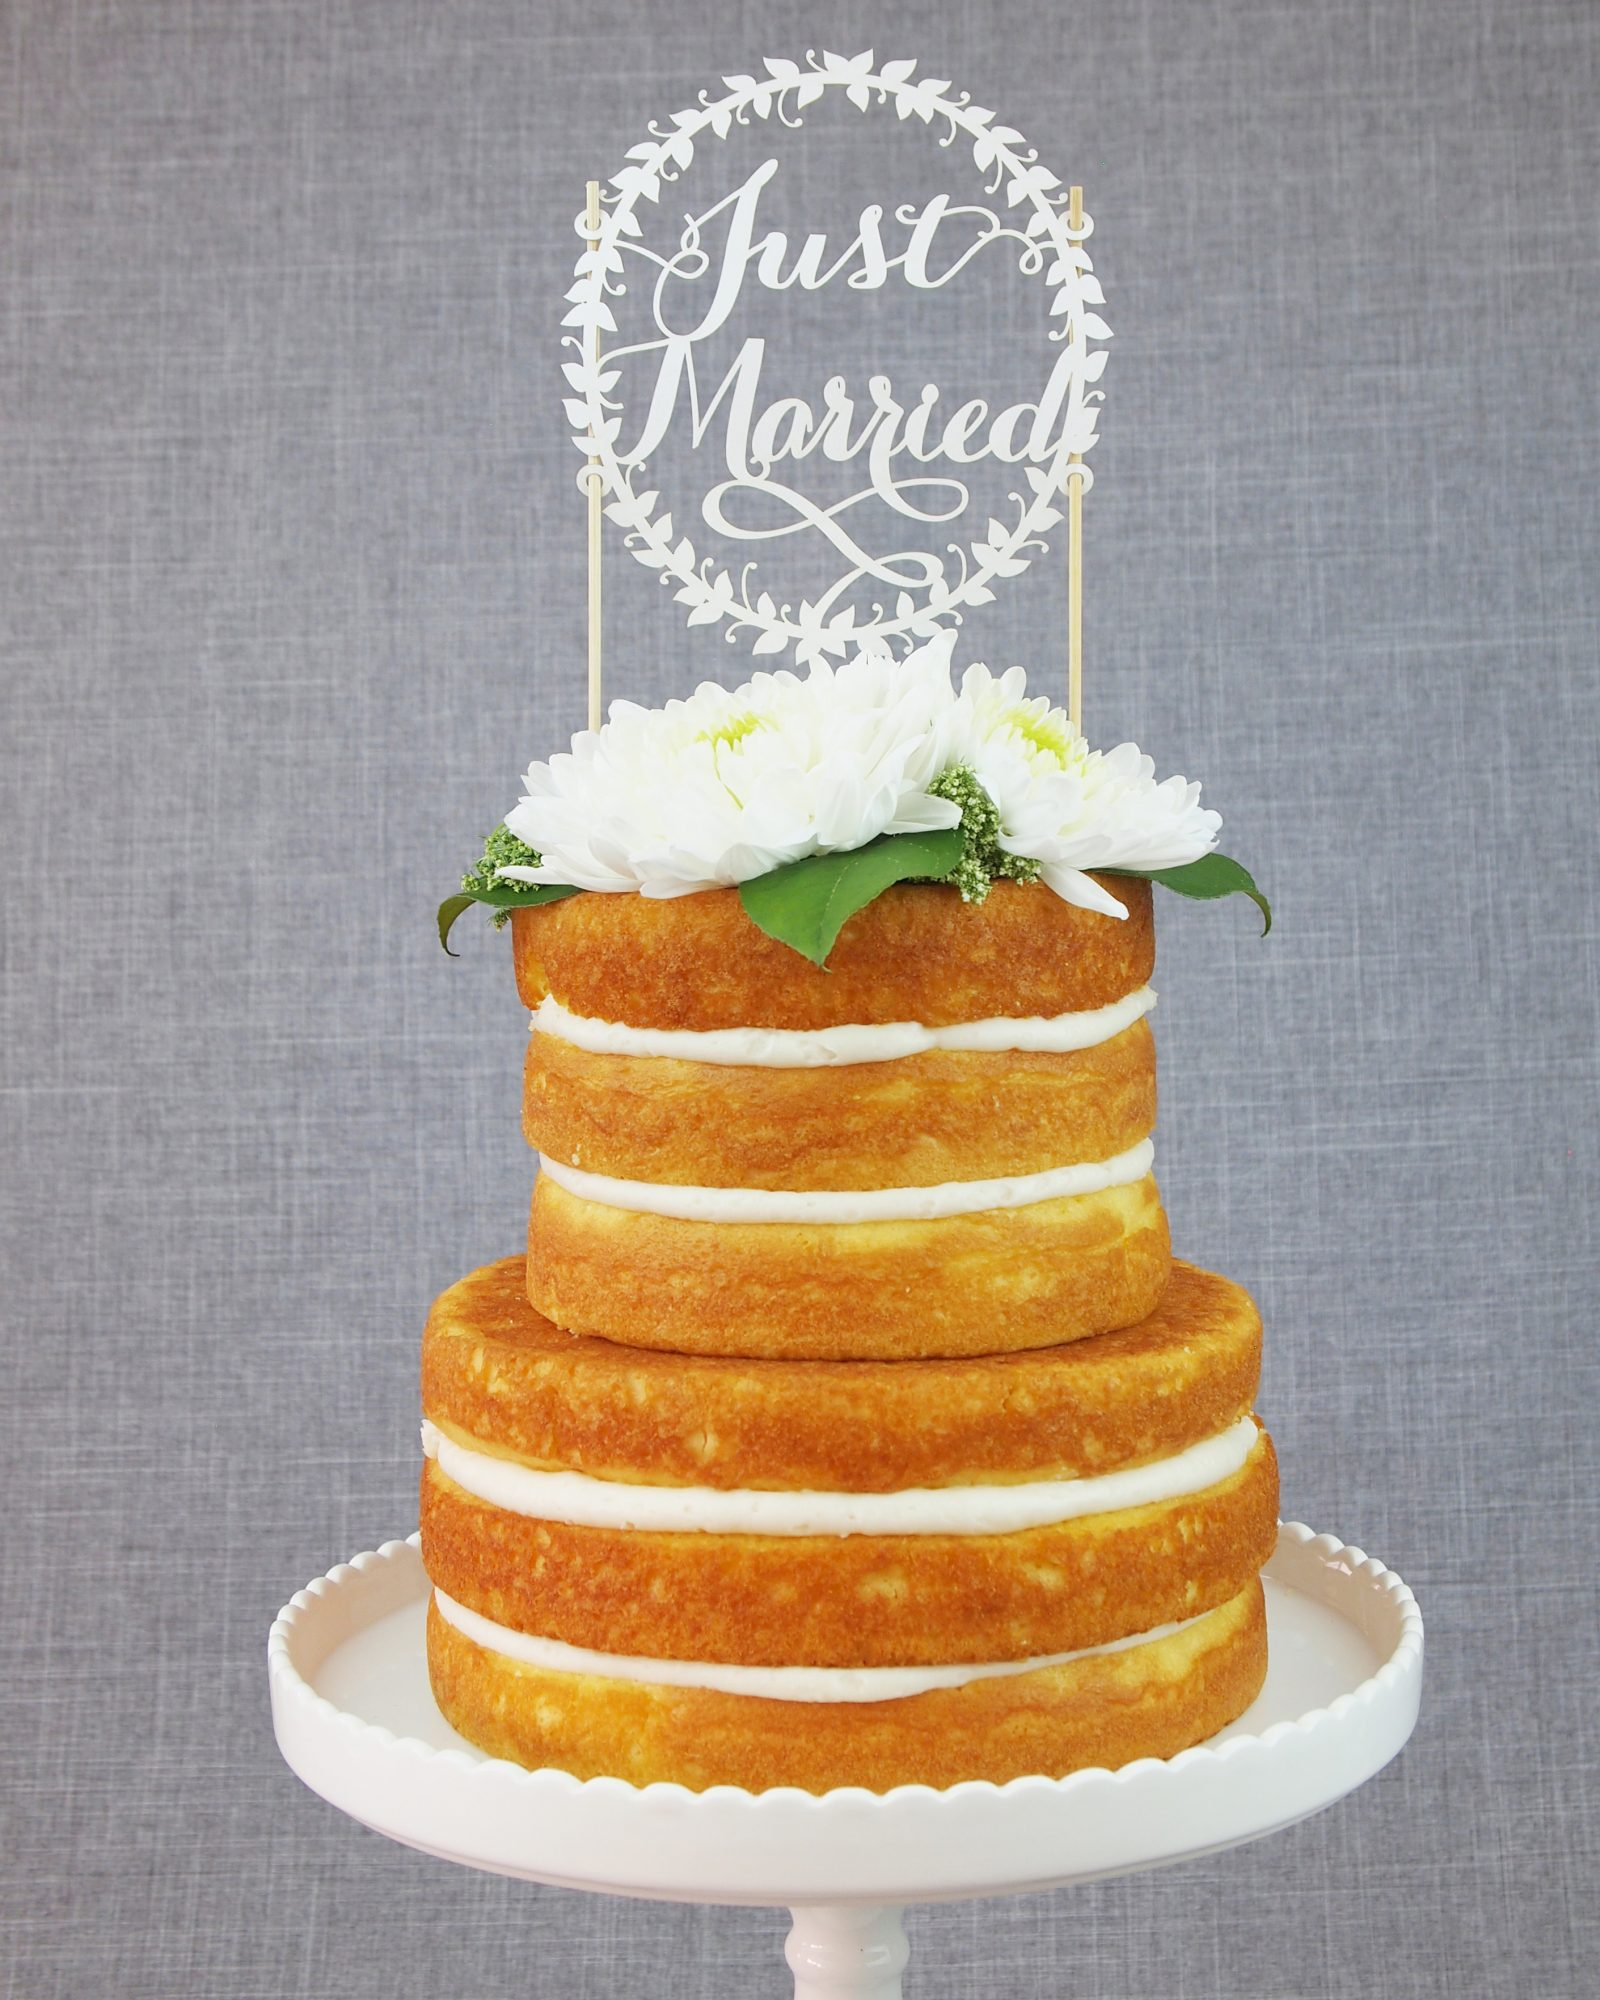 cake-toppers-alexis-mattox-just-married-paper-0814.jpg